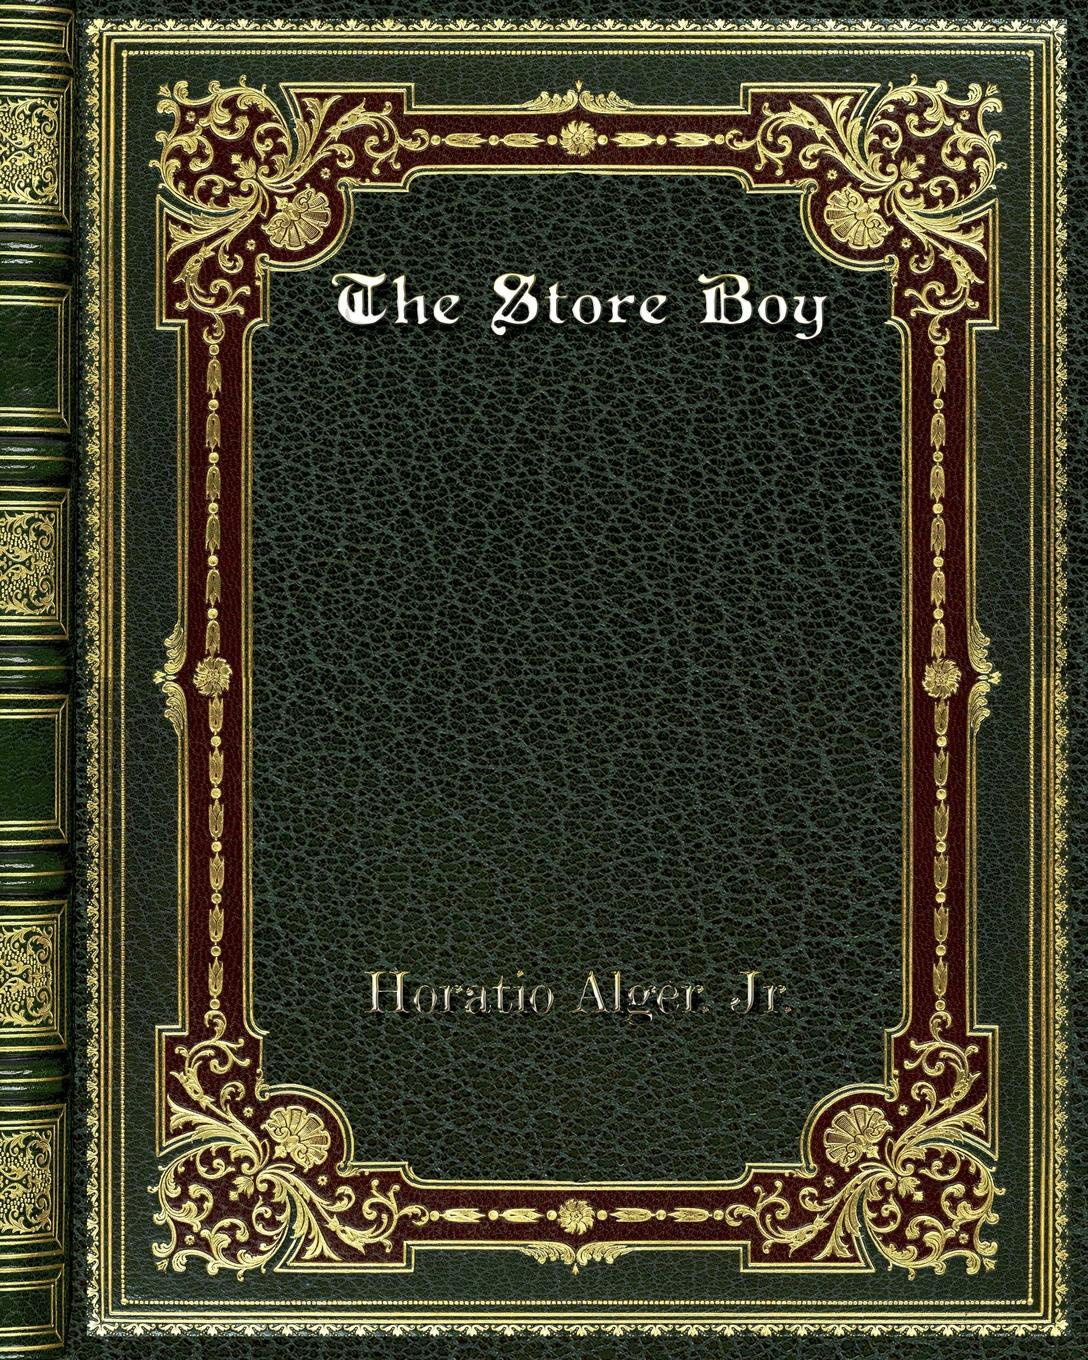 Horatio Alger. Jr. The Store Boy the store